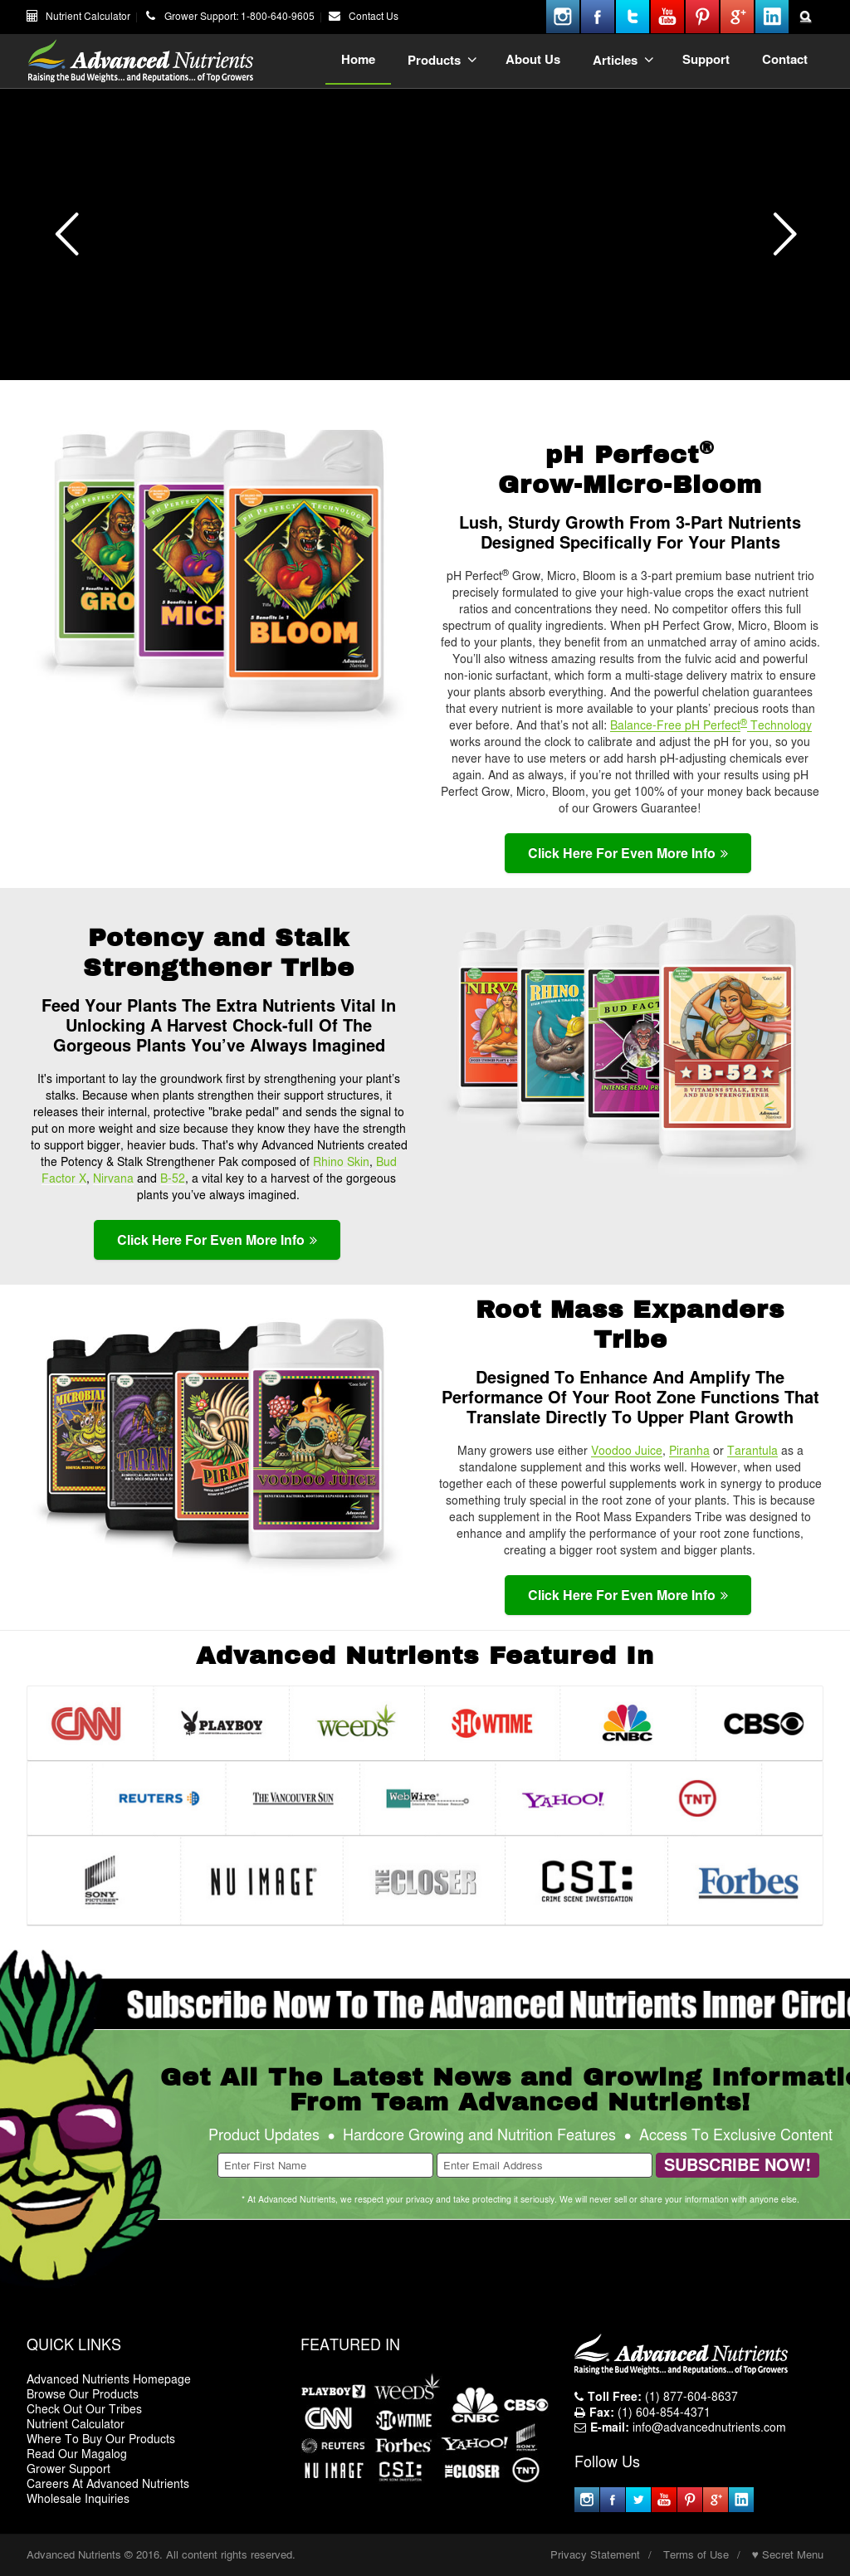 Advanced Nutrients Competitors, Revenue and Employees